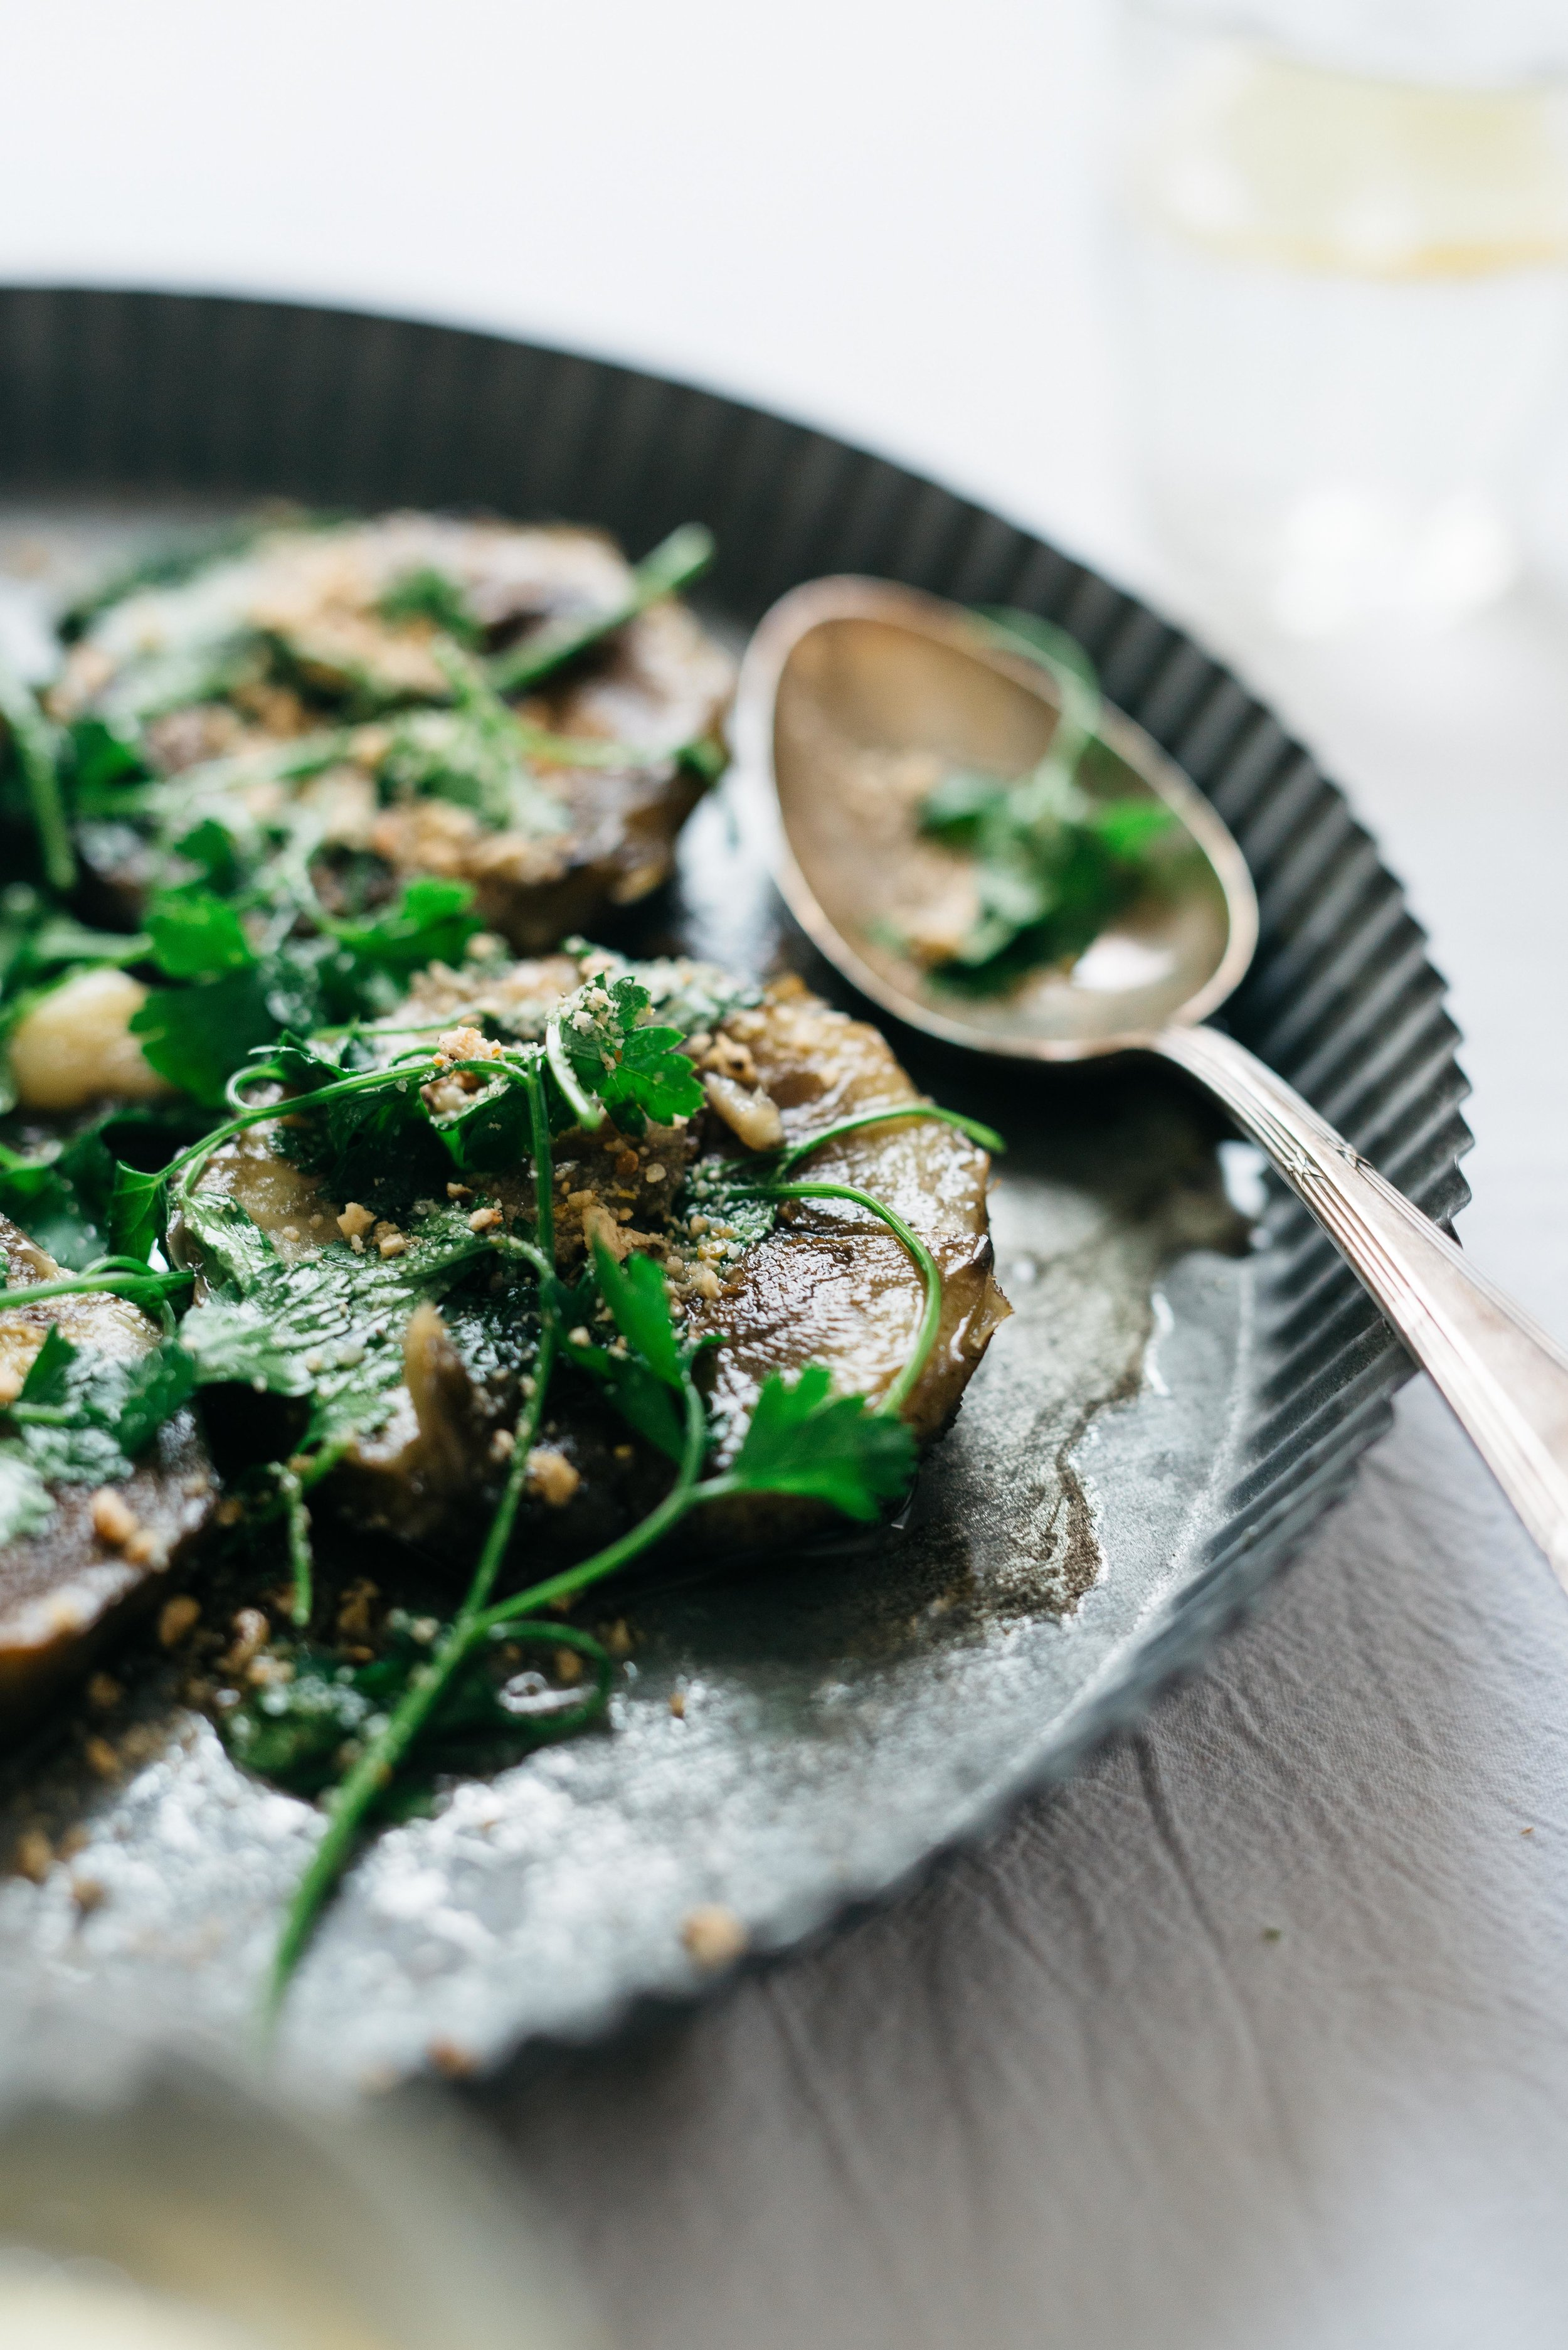 Pan-Fried Artichoke Hearts With Parsley | Dolly and Oatmeal